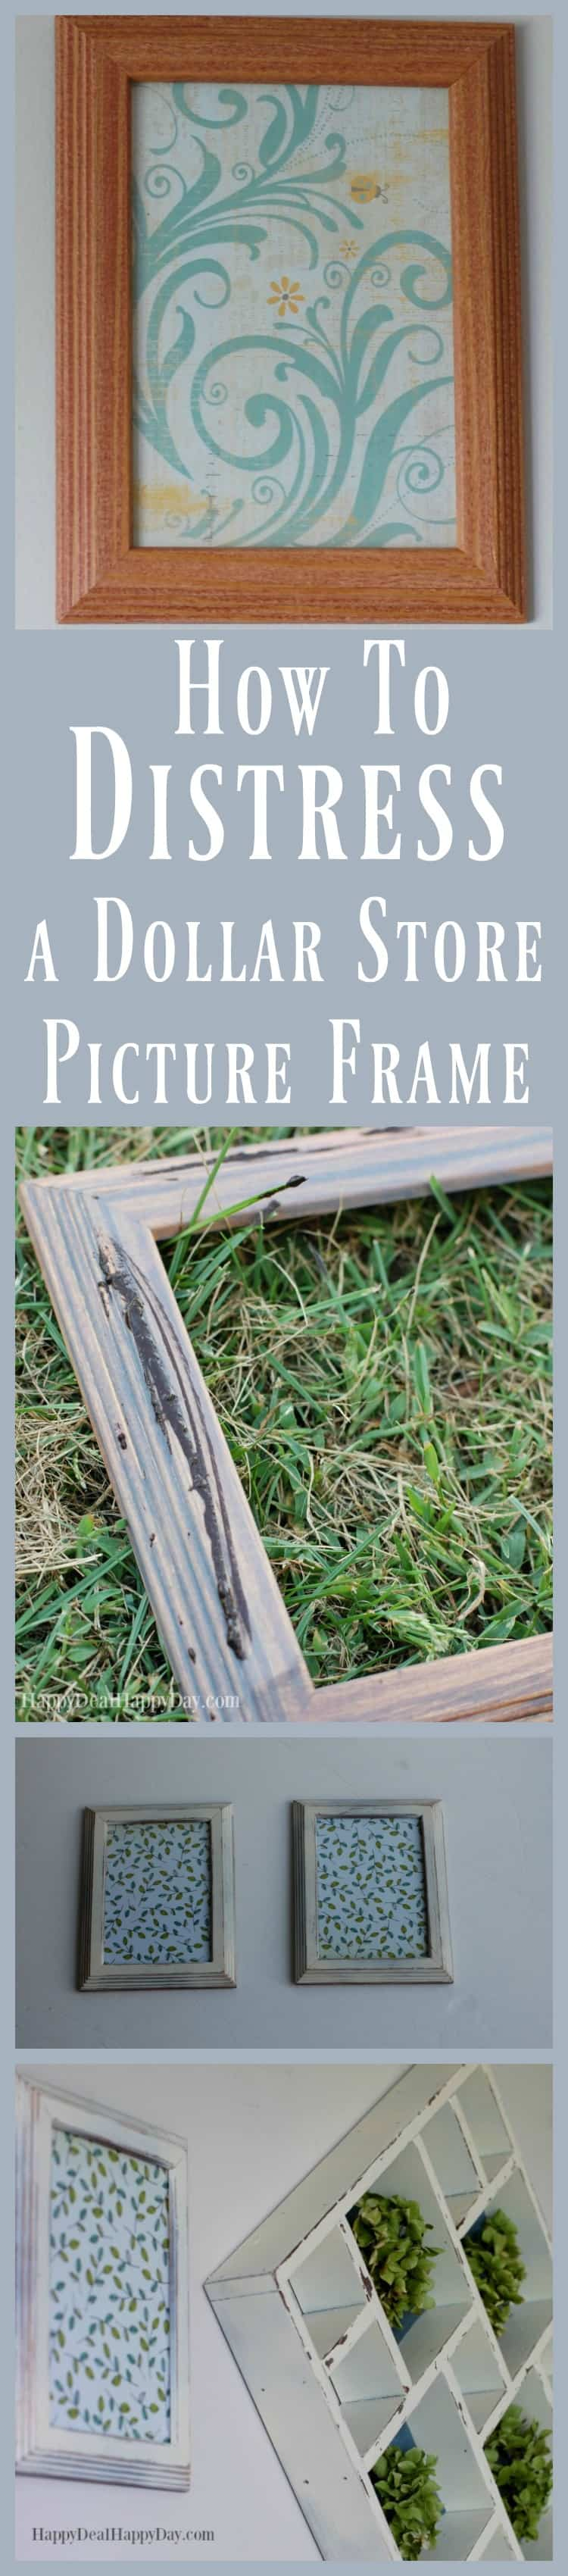 How to distress a picture frame from the dollar tree happy deal how to distress a dollar store picture frame get that rustic farmhouse look using just jeuxipadfo Image collections